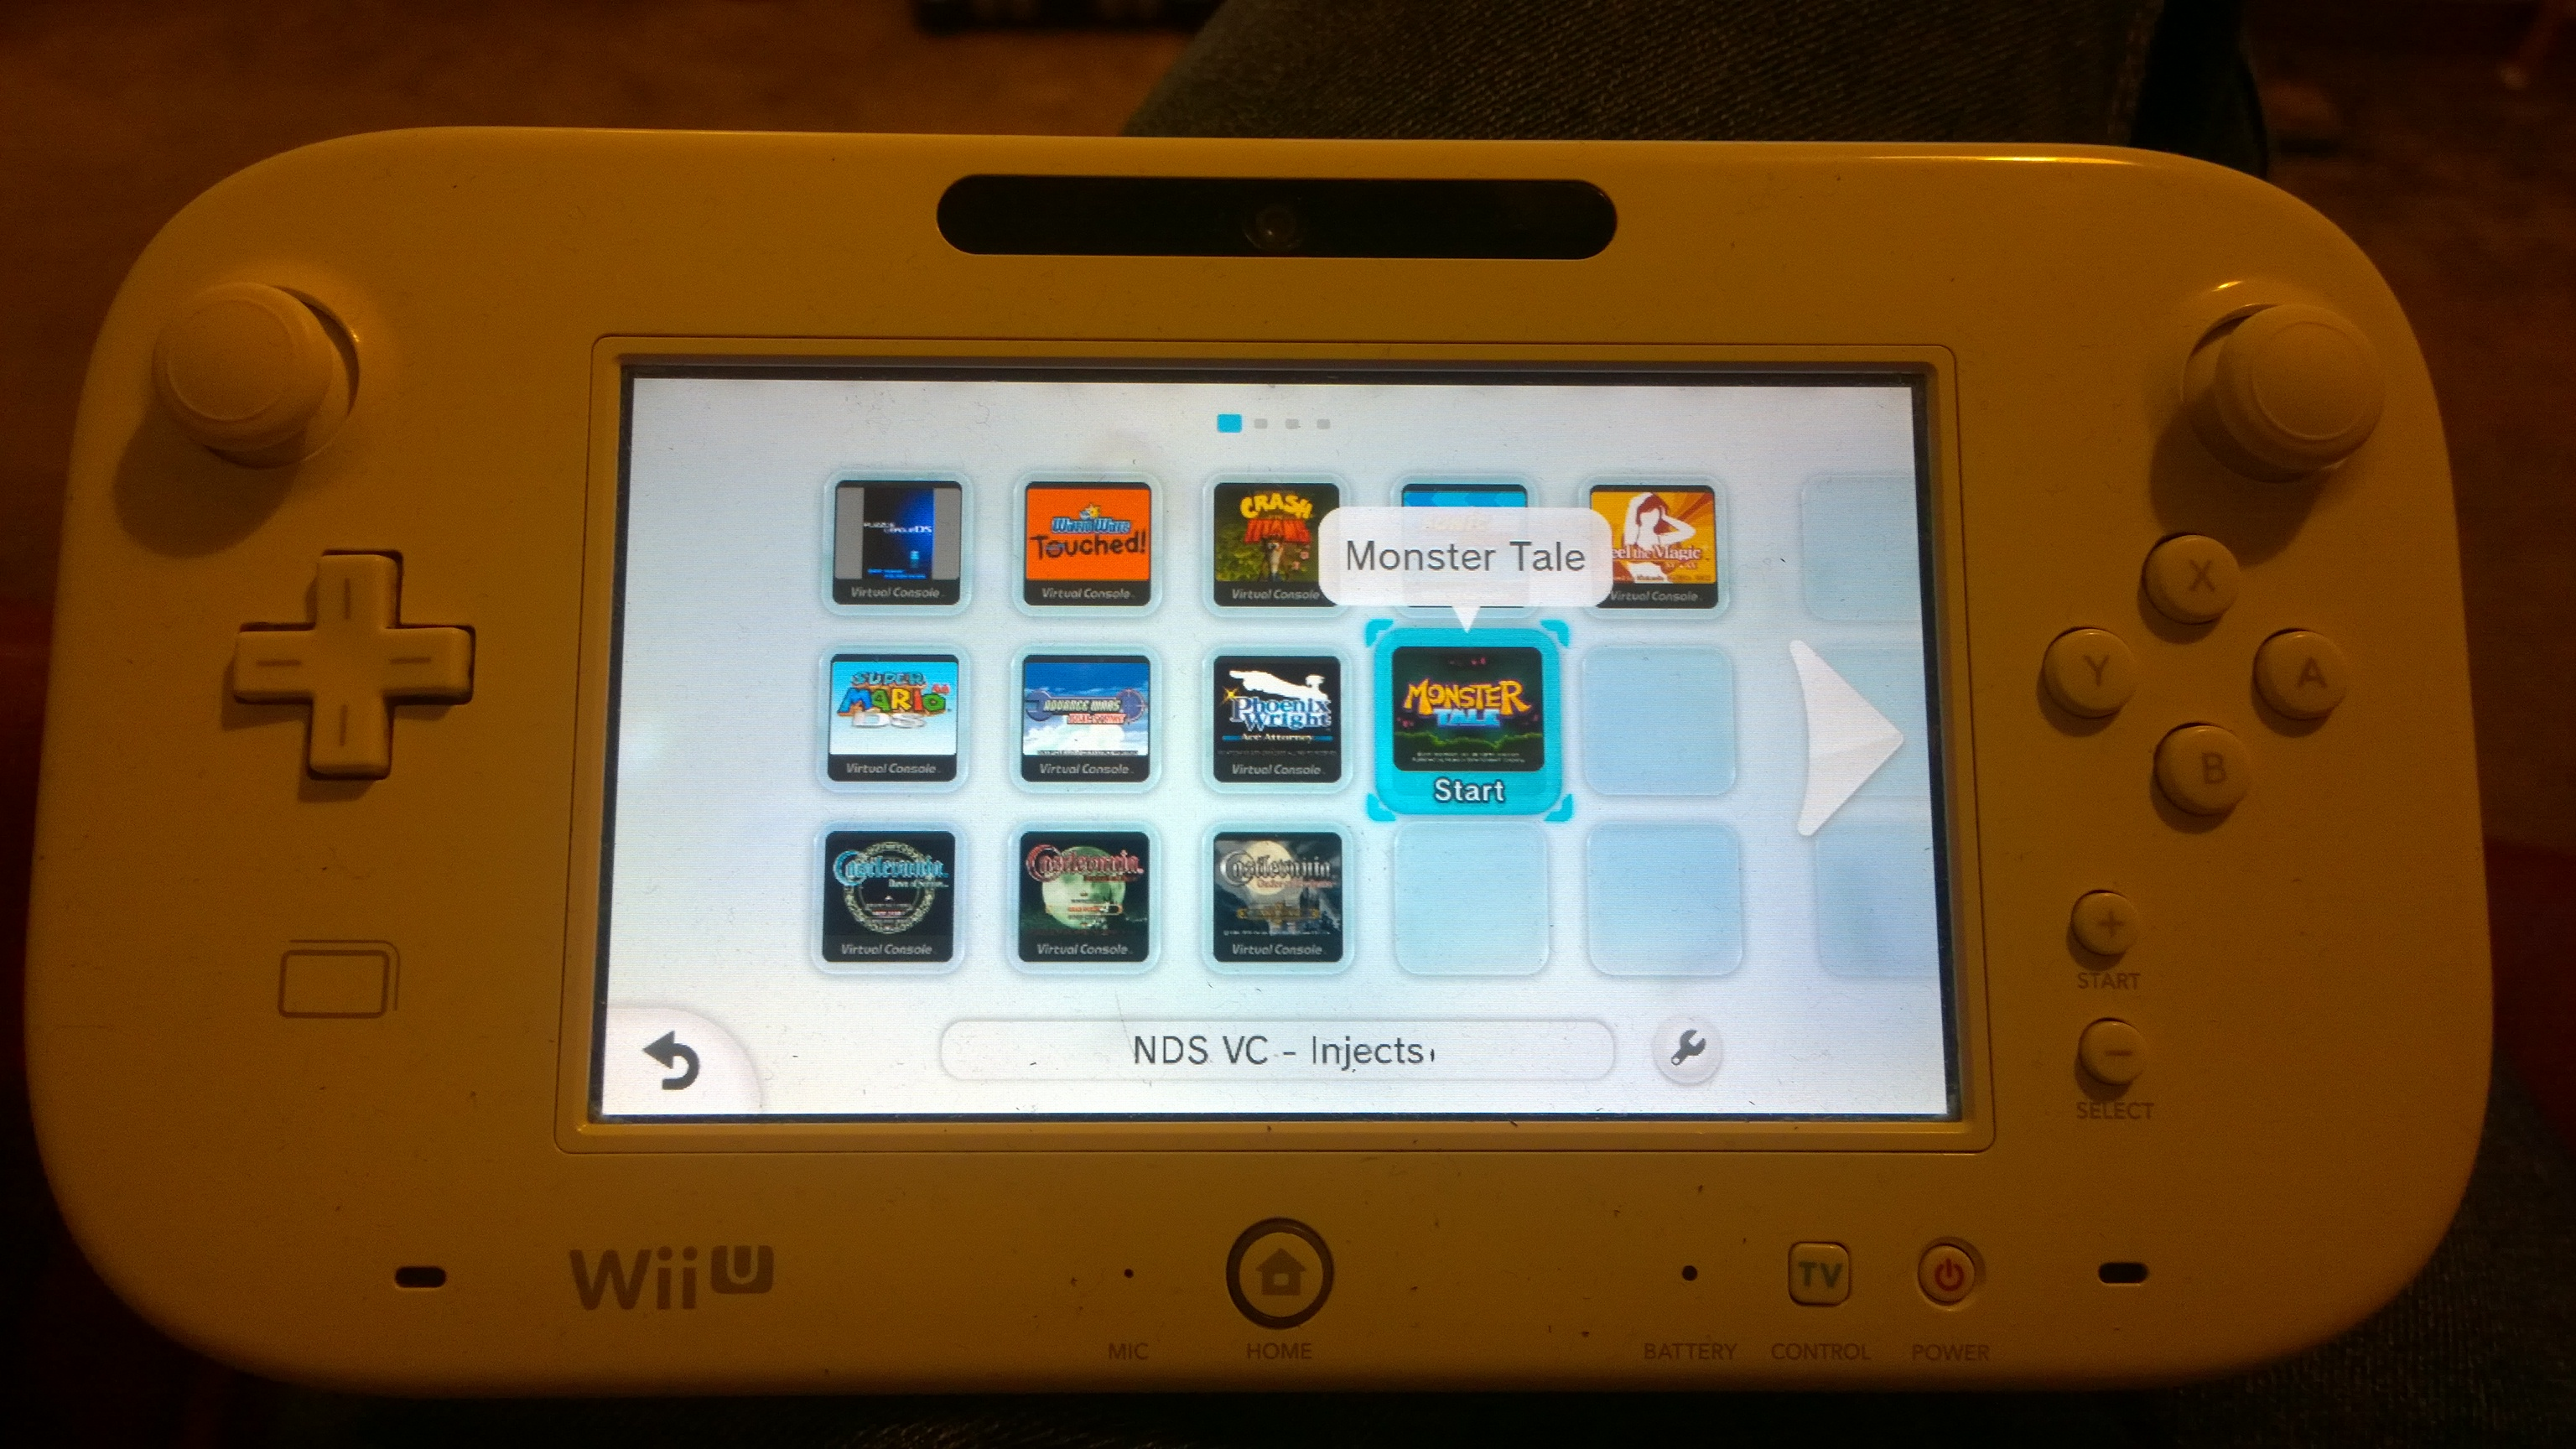 Wii U Nintendo Ds Virtual Console Inject Guide Vc Injection Original Img